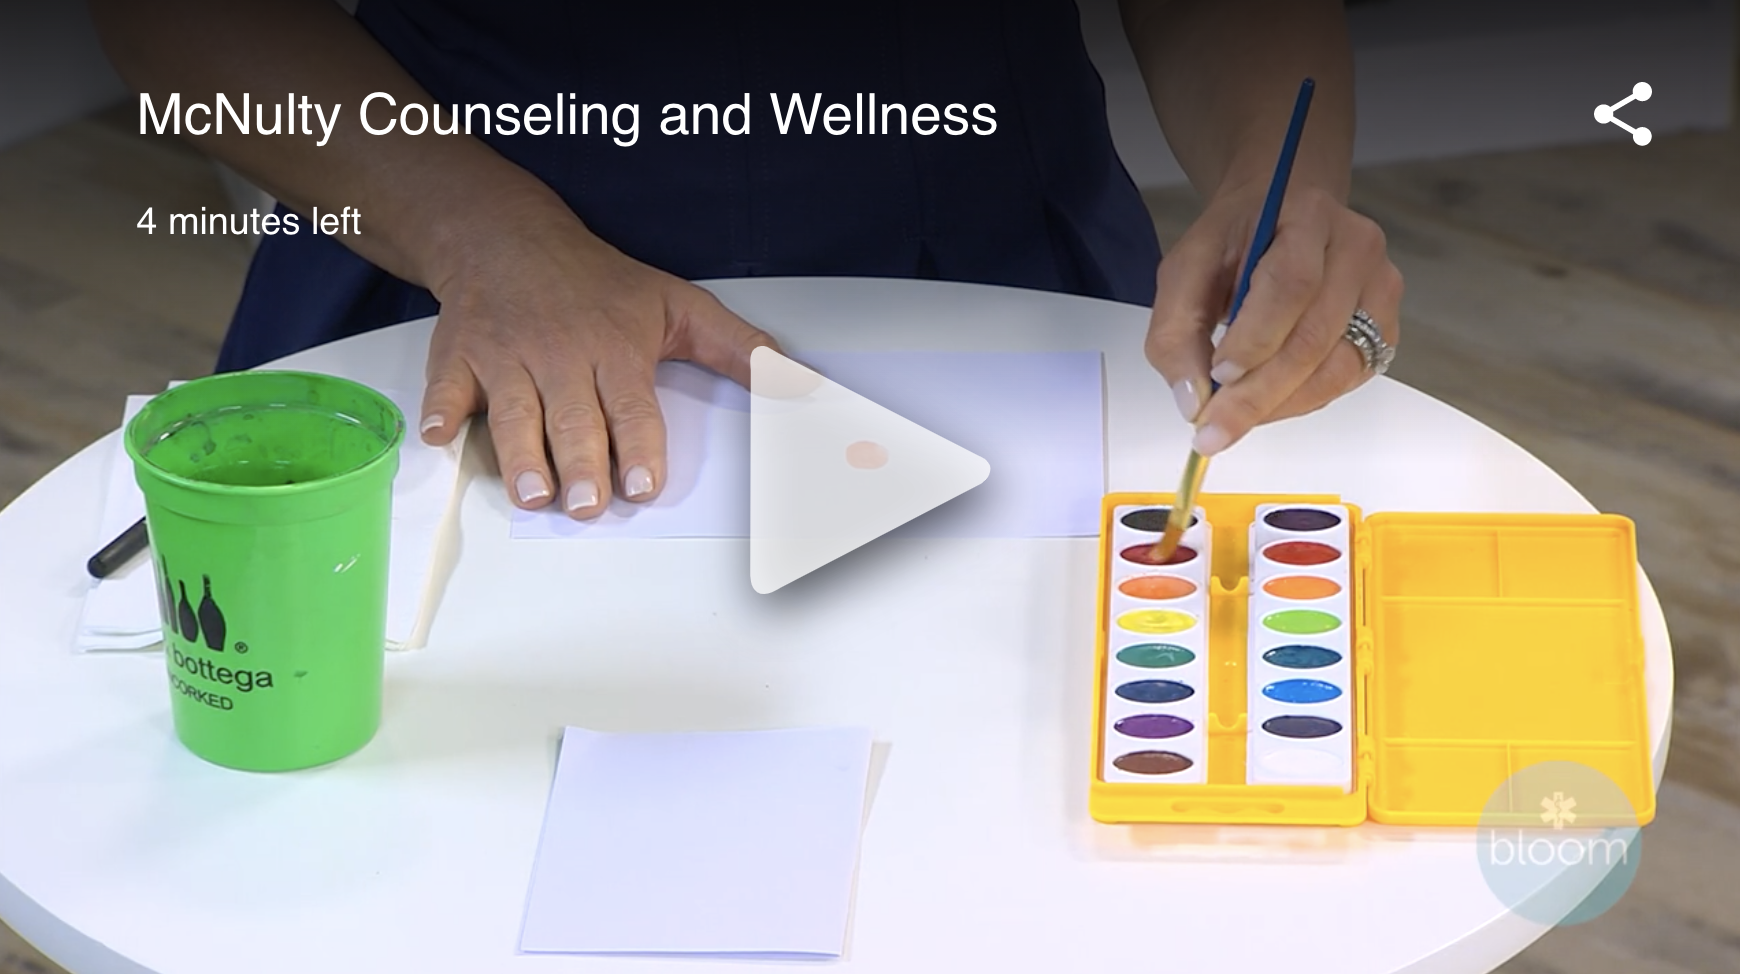 mcnulty counseling and wellness painting